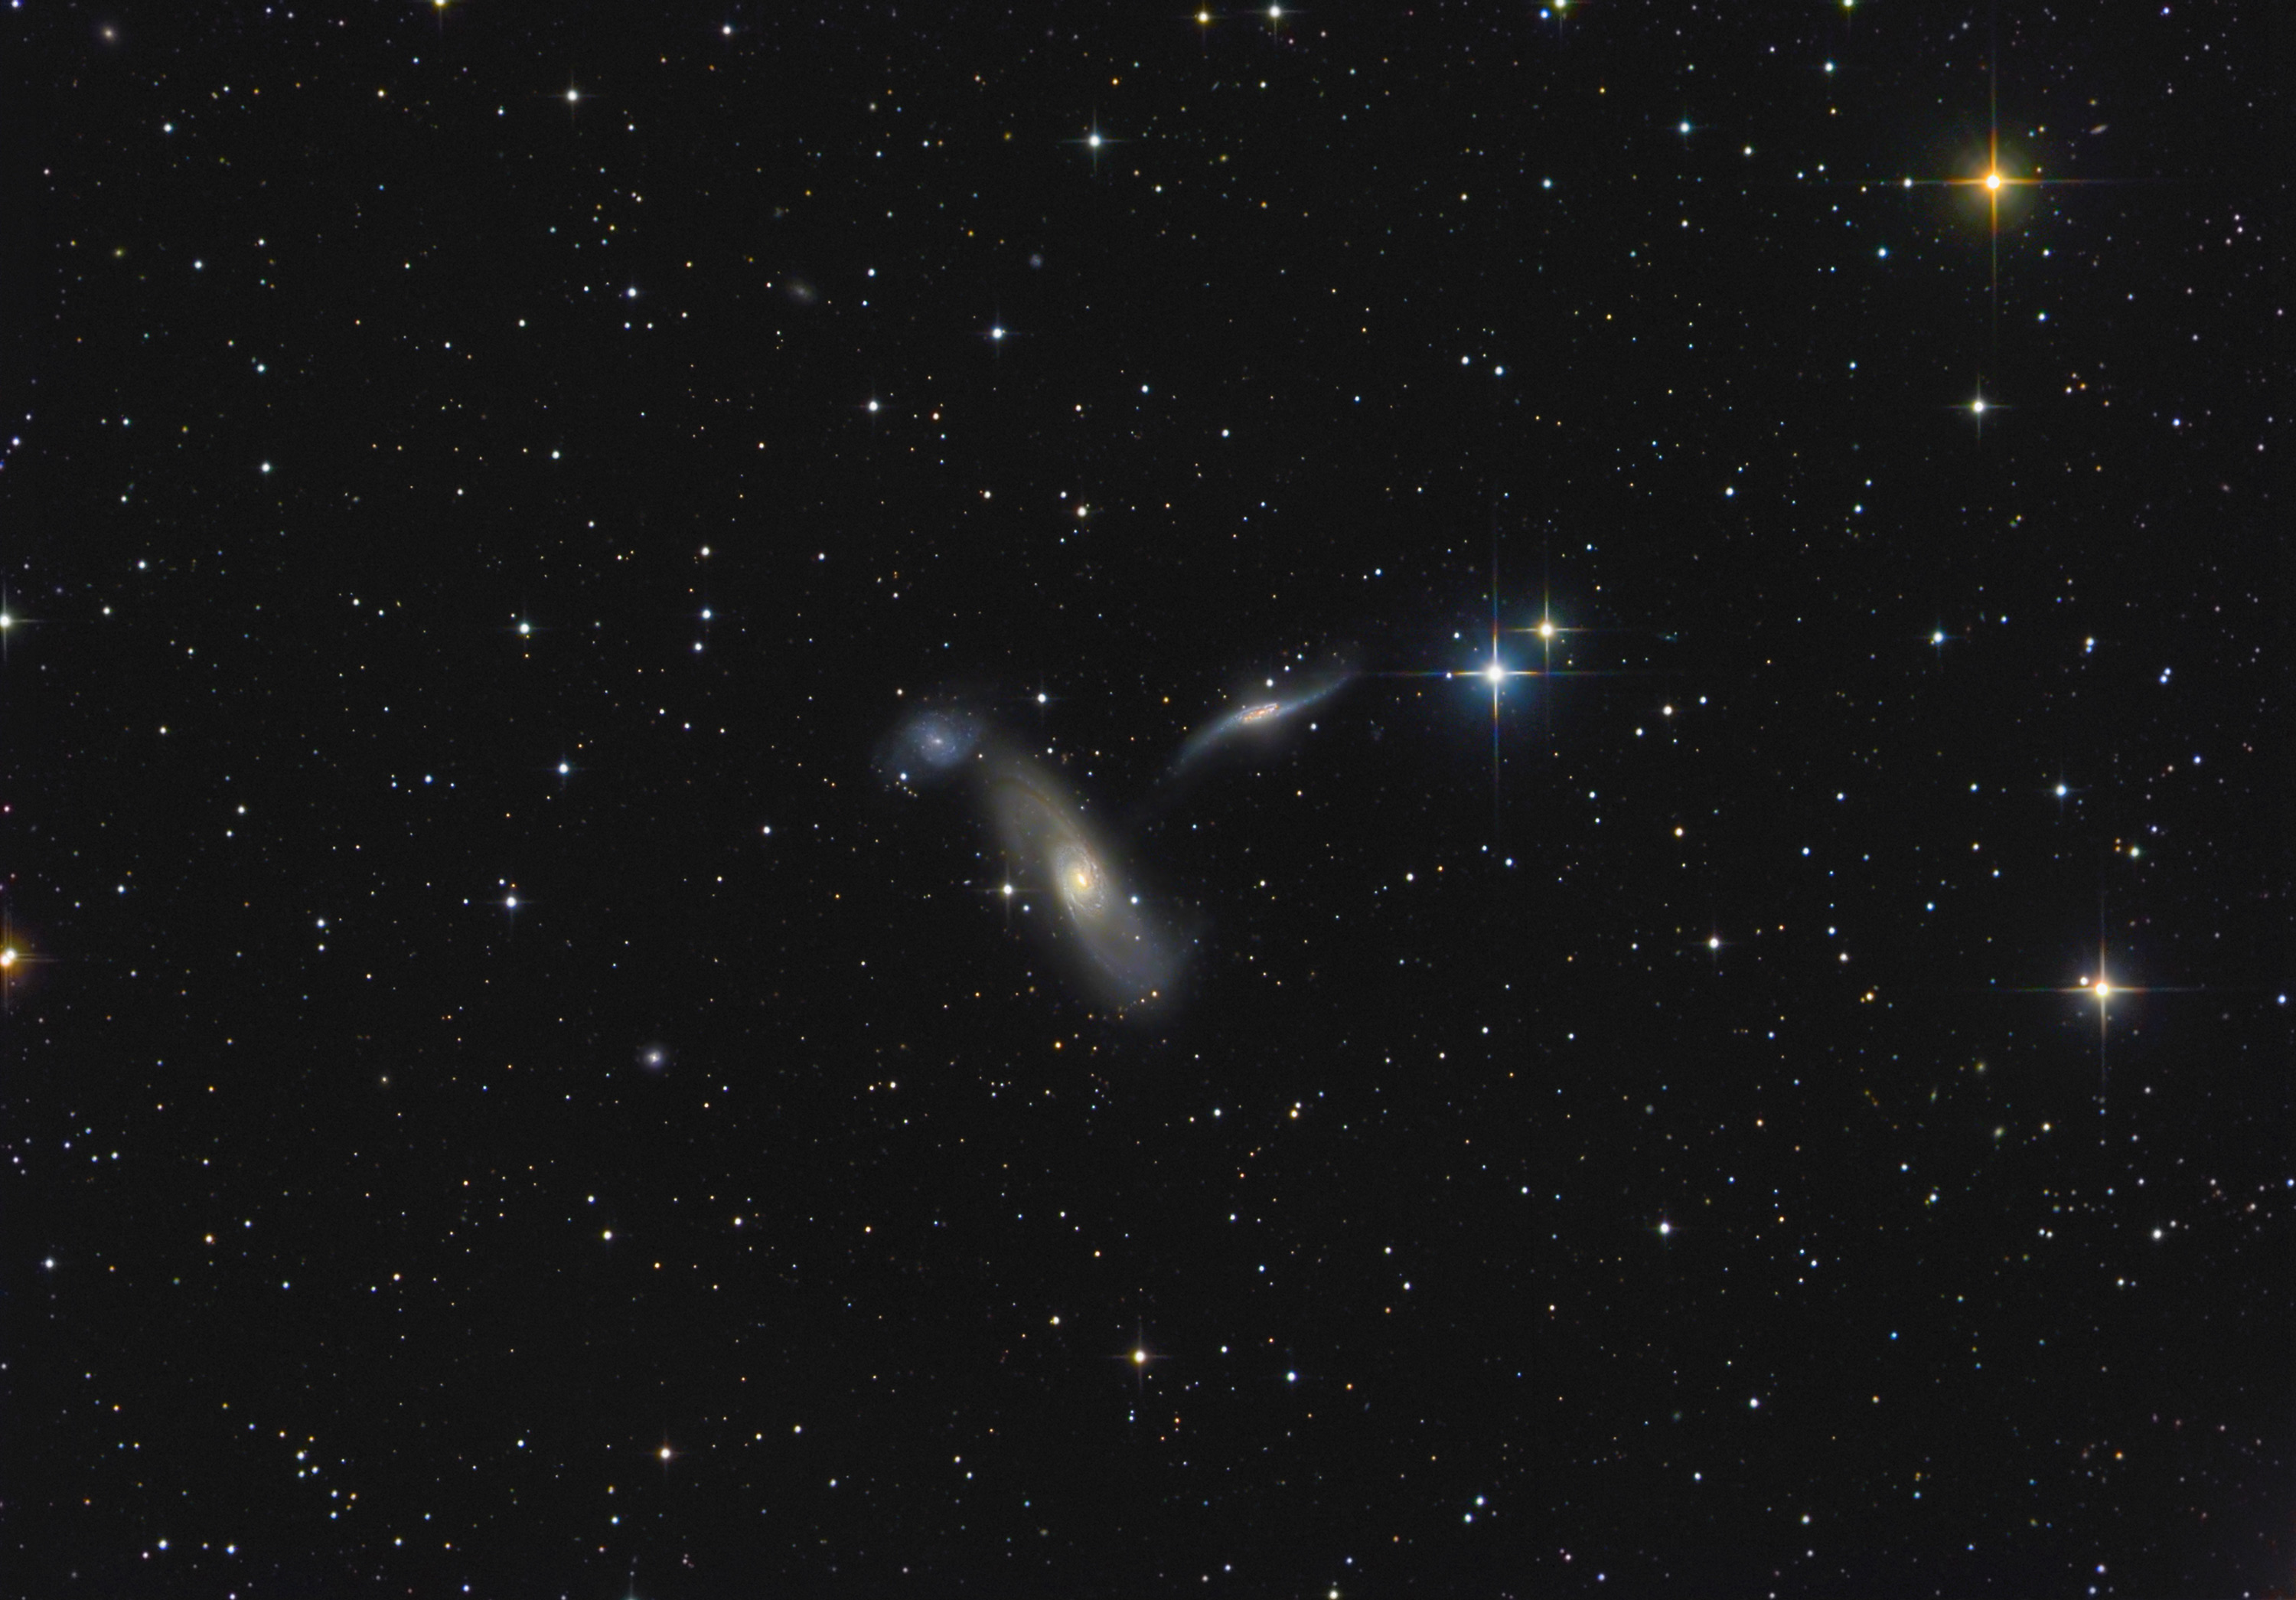 Klostersternwarte NGC5566Gruppe 202003 25 0416L 20180315 21RGB 704min